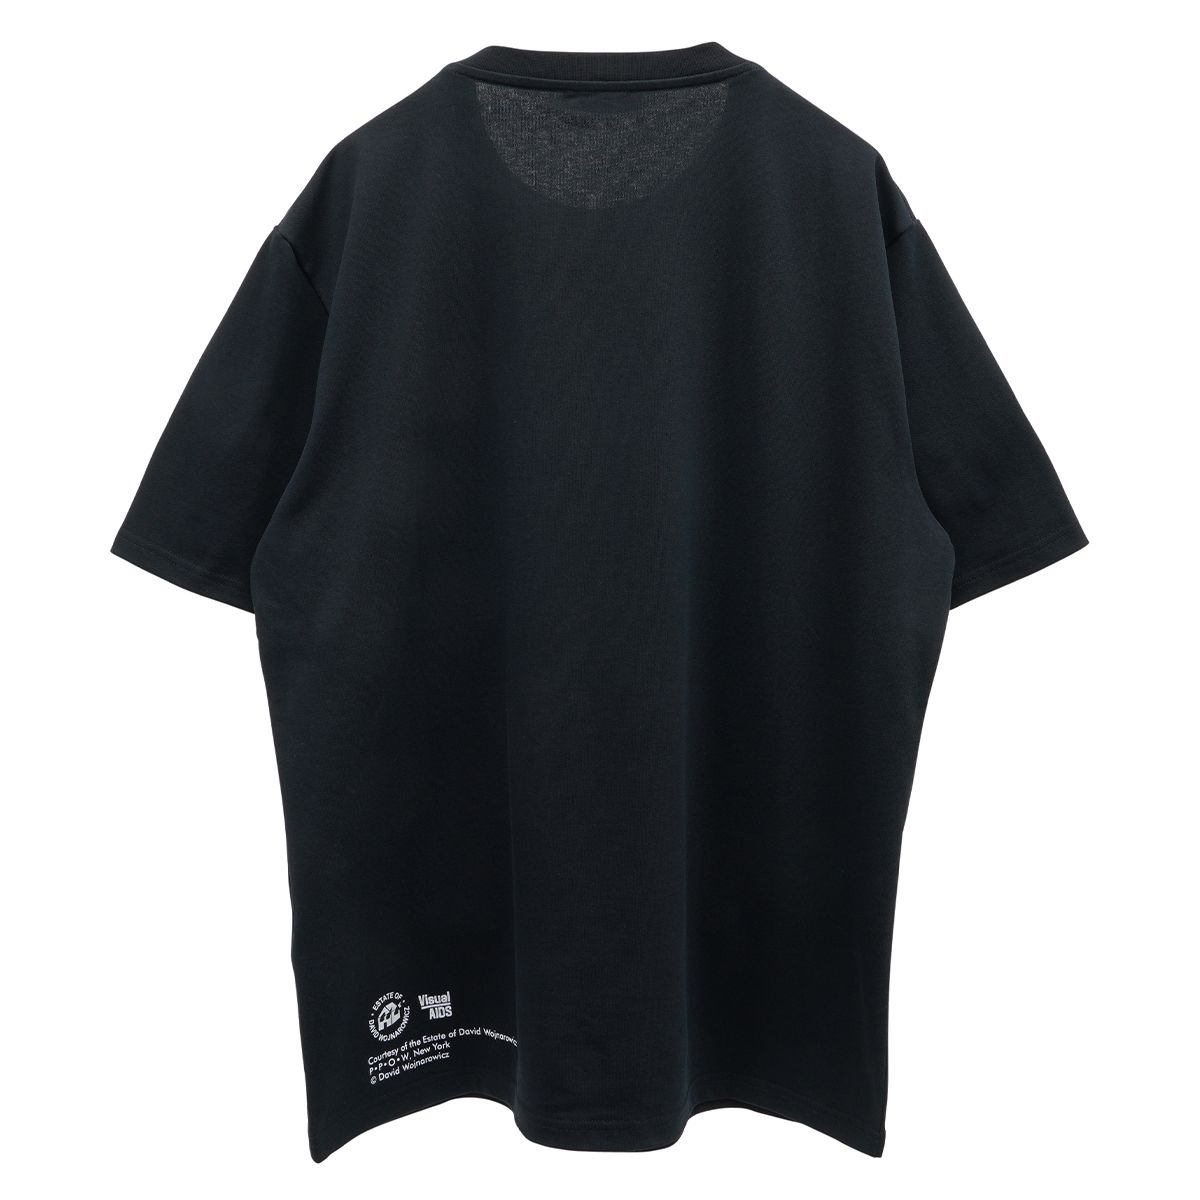 JW Anderson T.SHIRT / 901